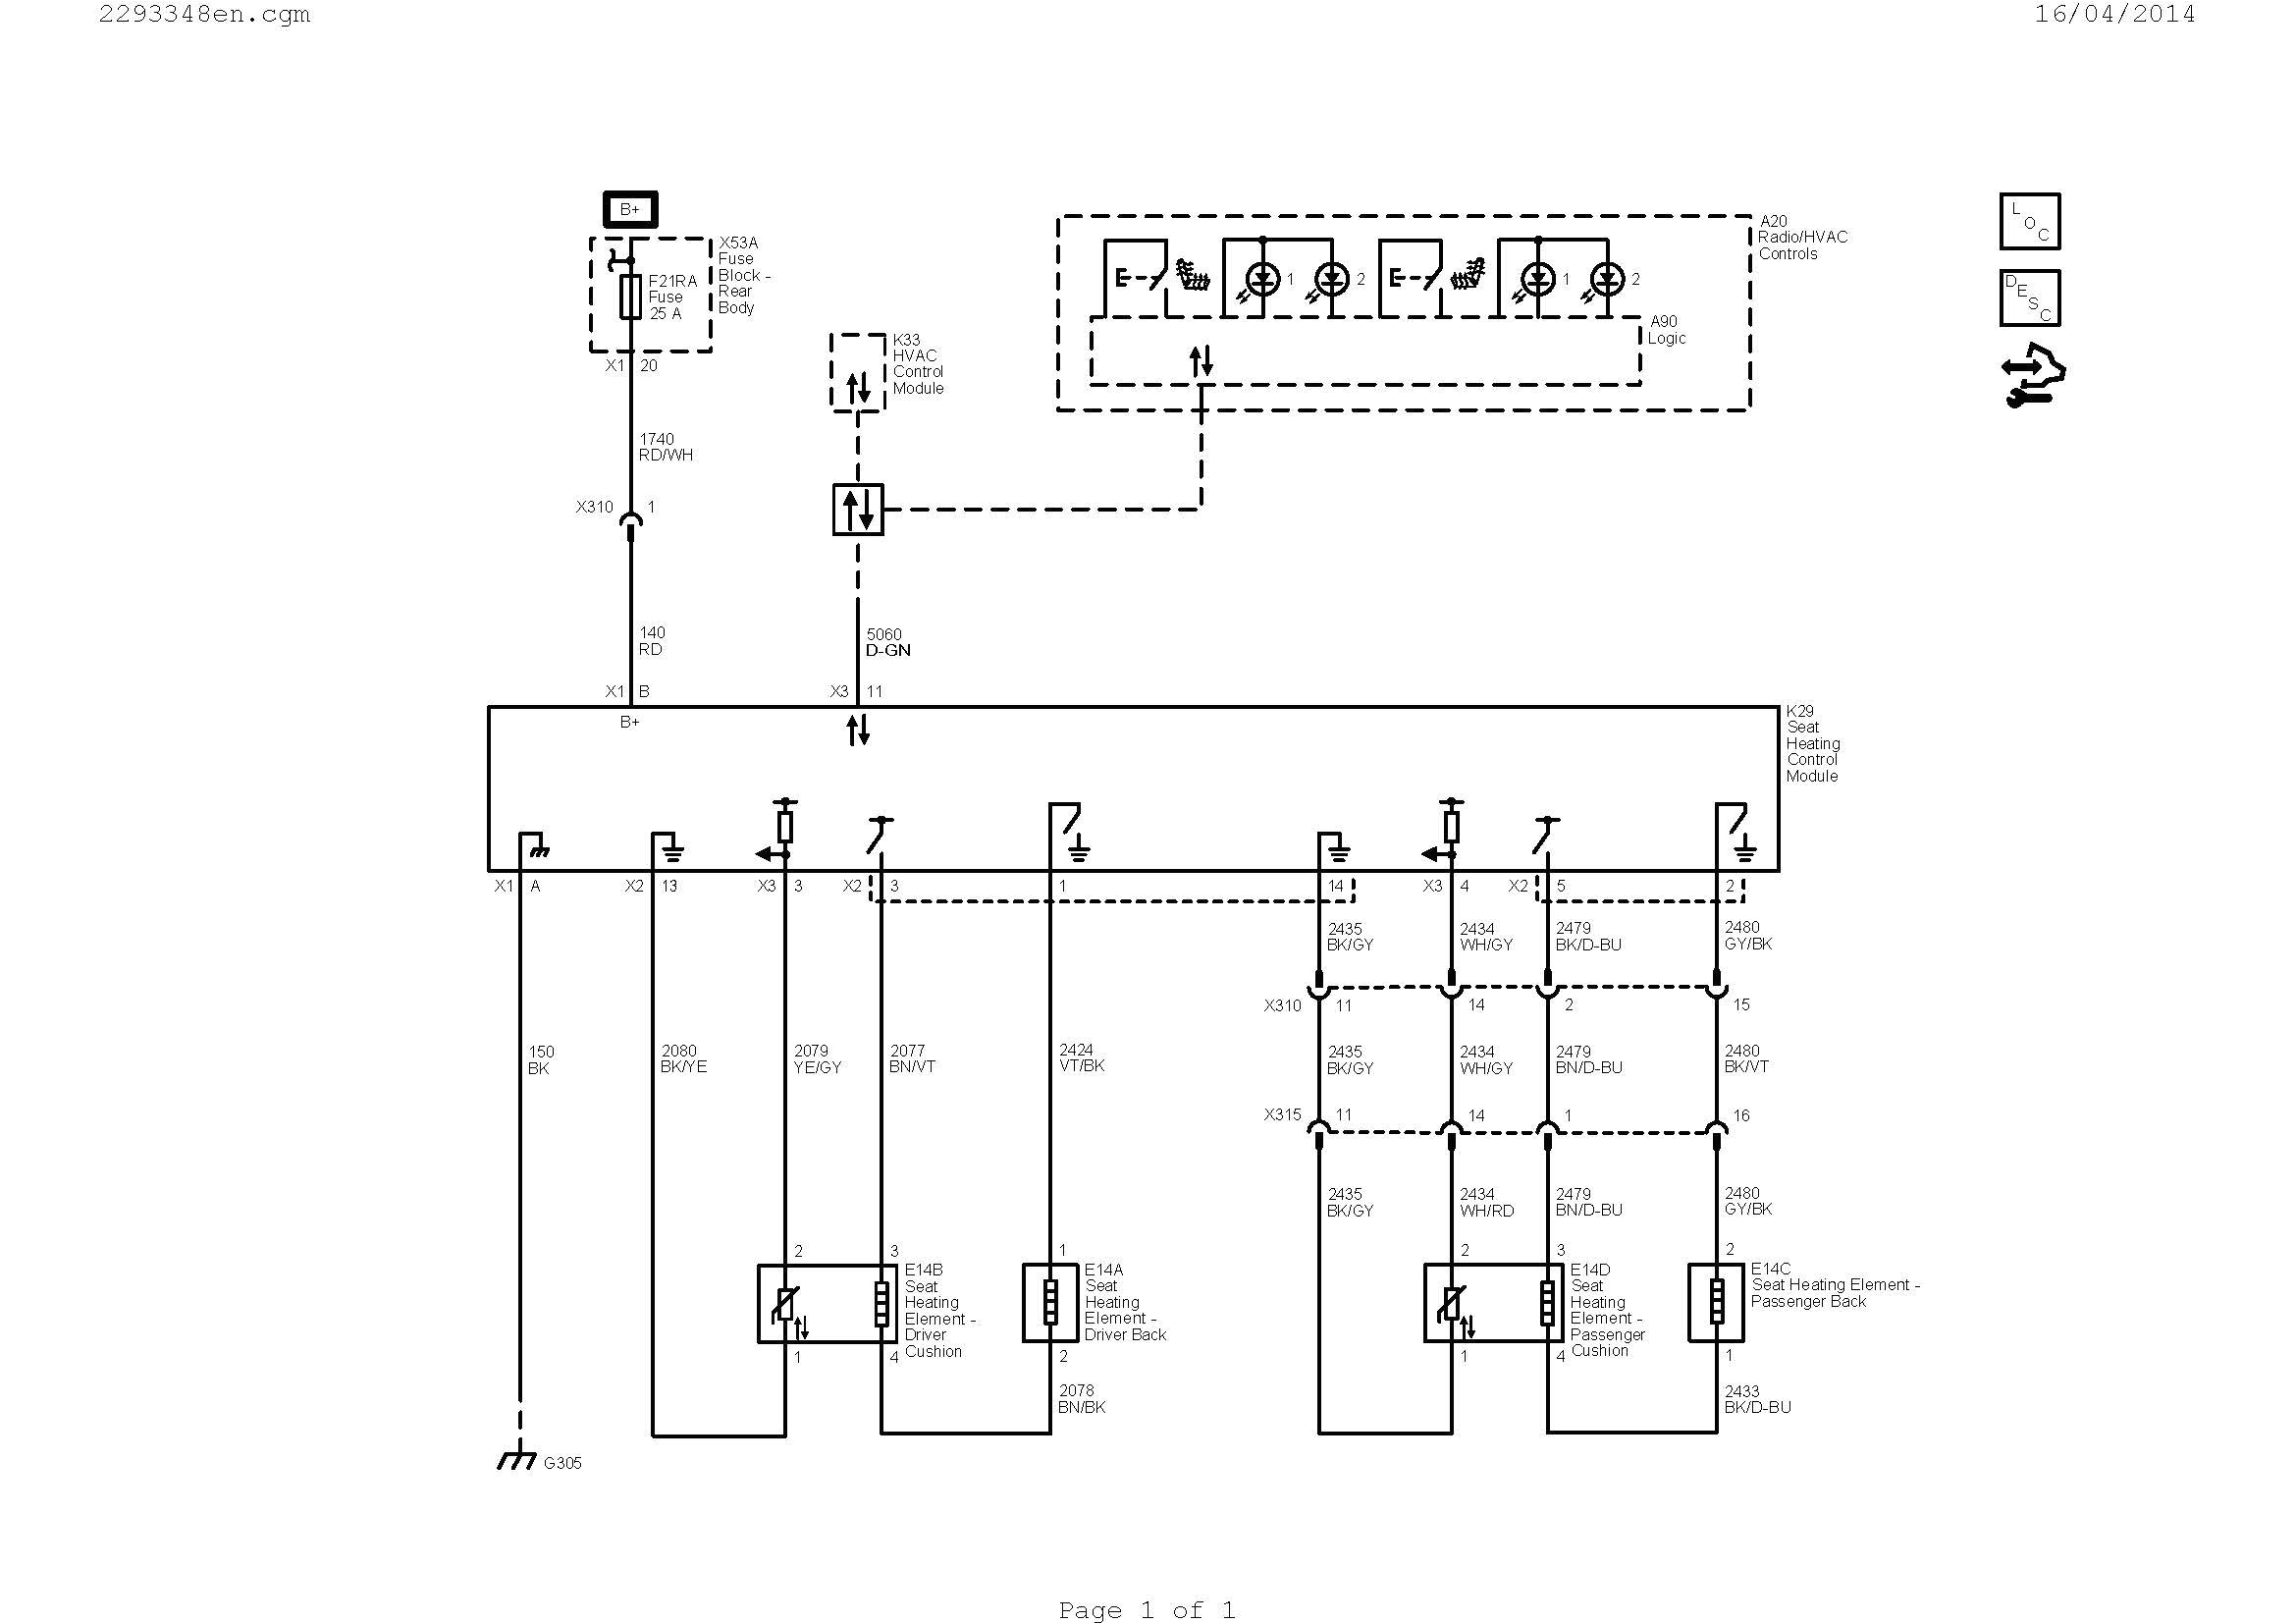 split unit wiring diagram collection wiring a ac thermostat diagram new wiring diagram ac valid